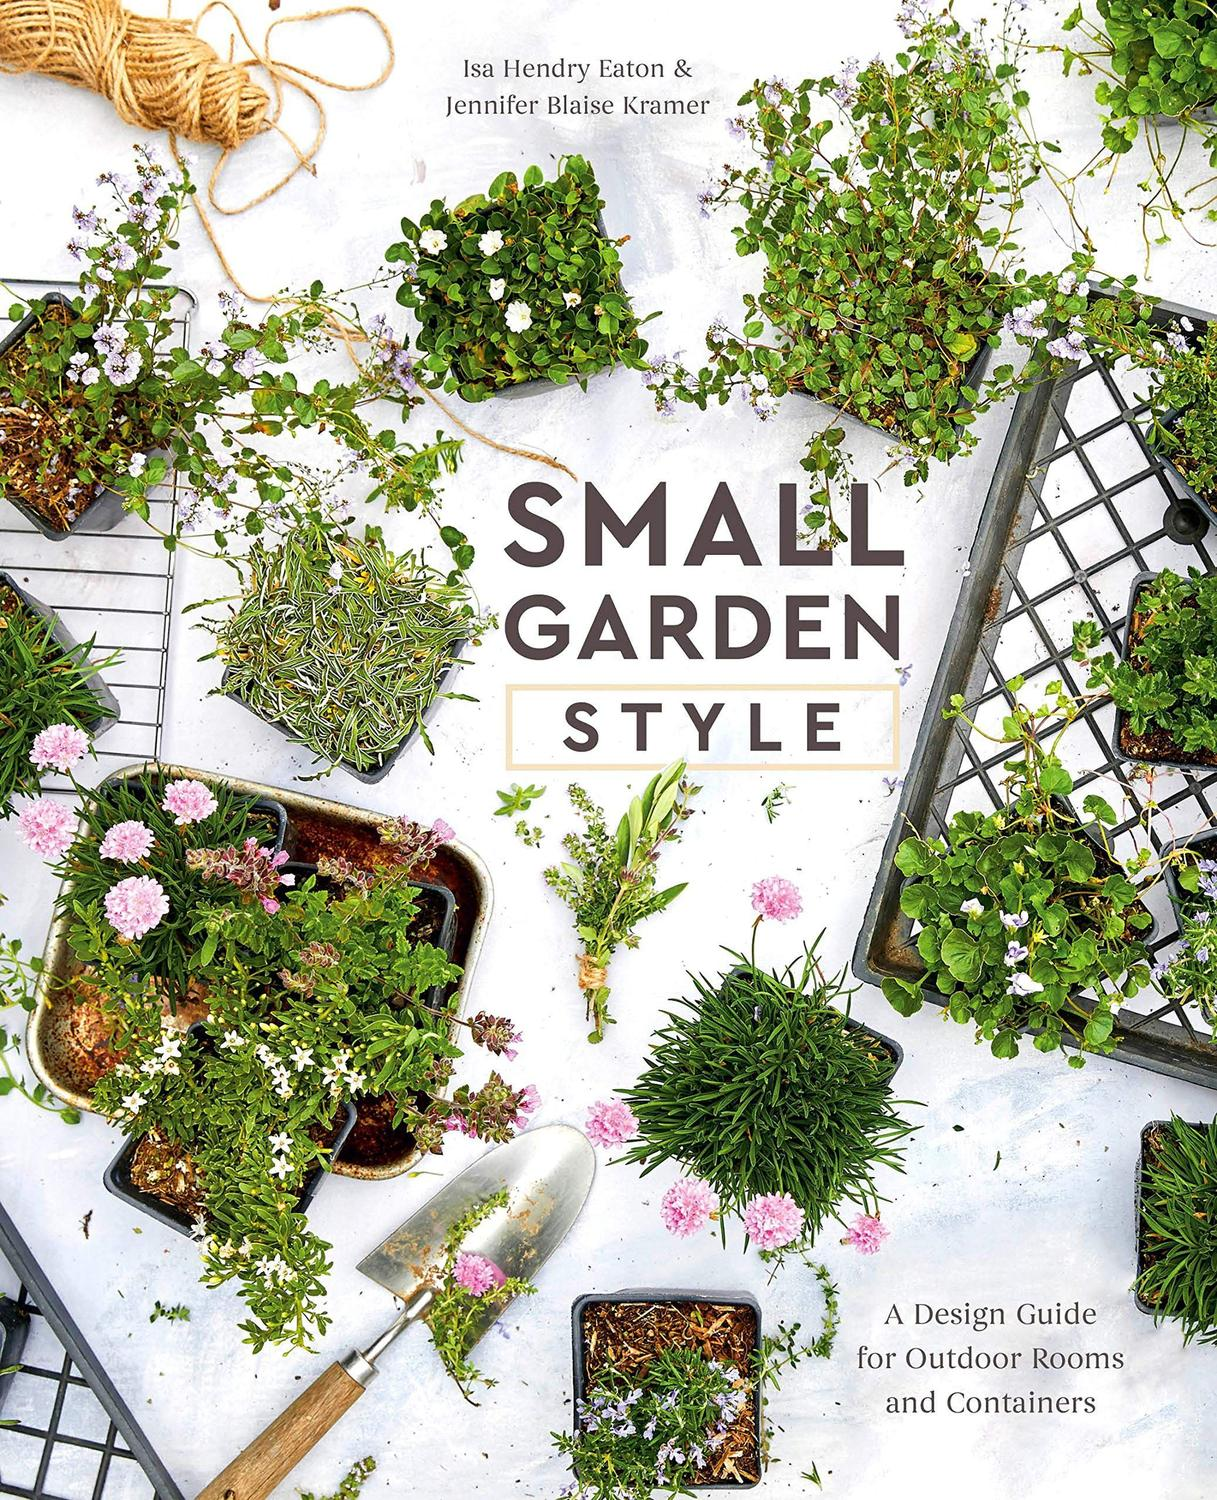 Small Garden Style A Design Guide For Outdoor Rooms And Containers Rizzoli Livros De Artes Magazine Luiza